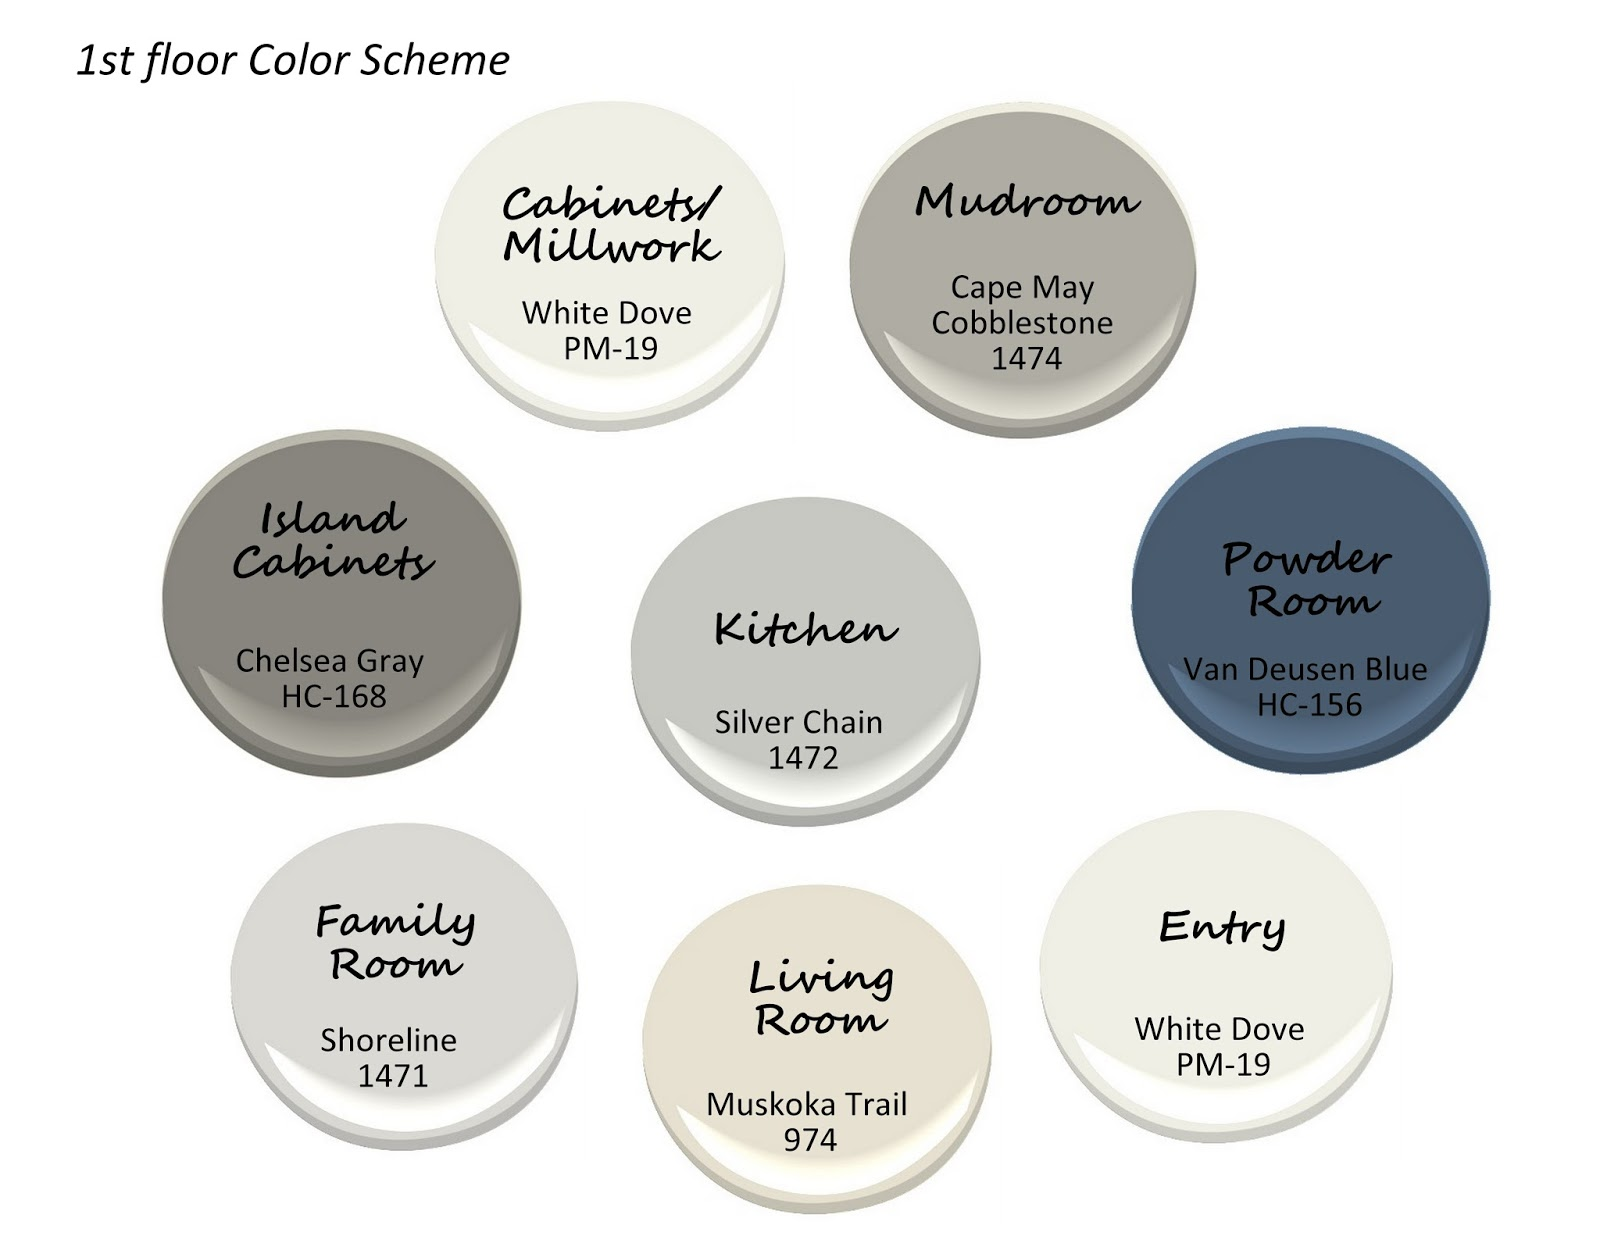 Nest studio jess b house update paint scheme - Whole house interior paint palette ...